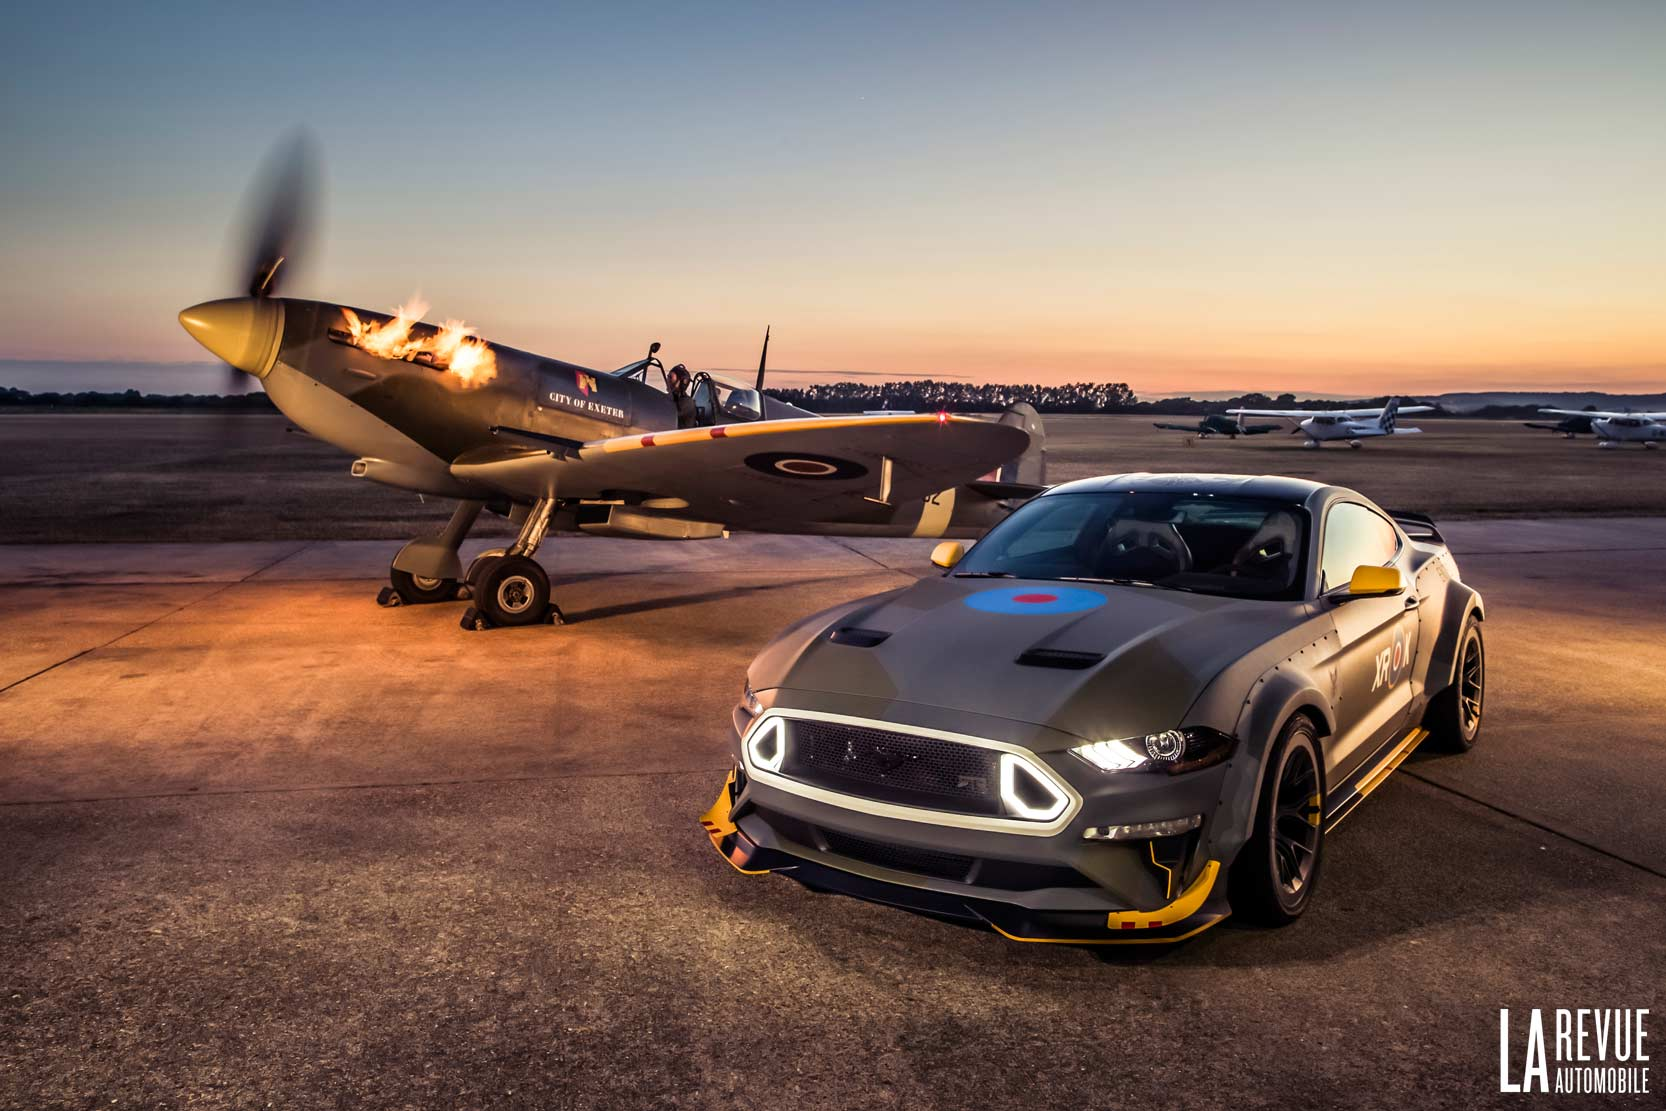 Exterieur_Ford-Mustang-GT-Eagle-Squadron-Spitfire_0